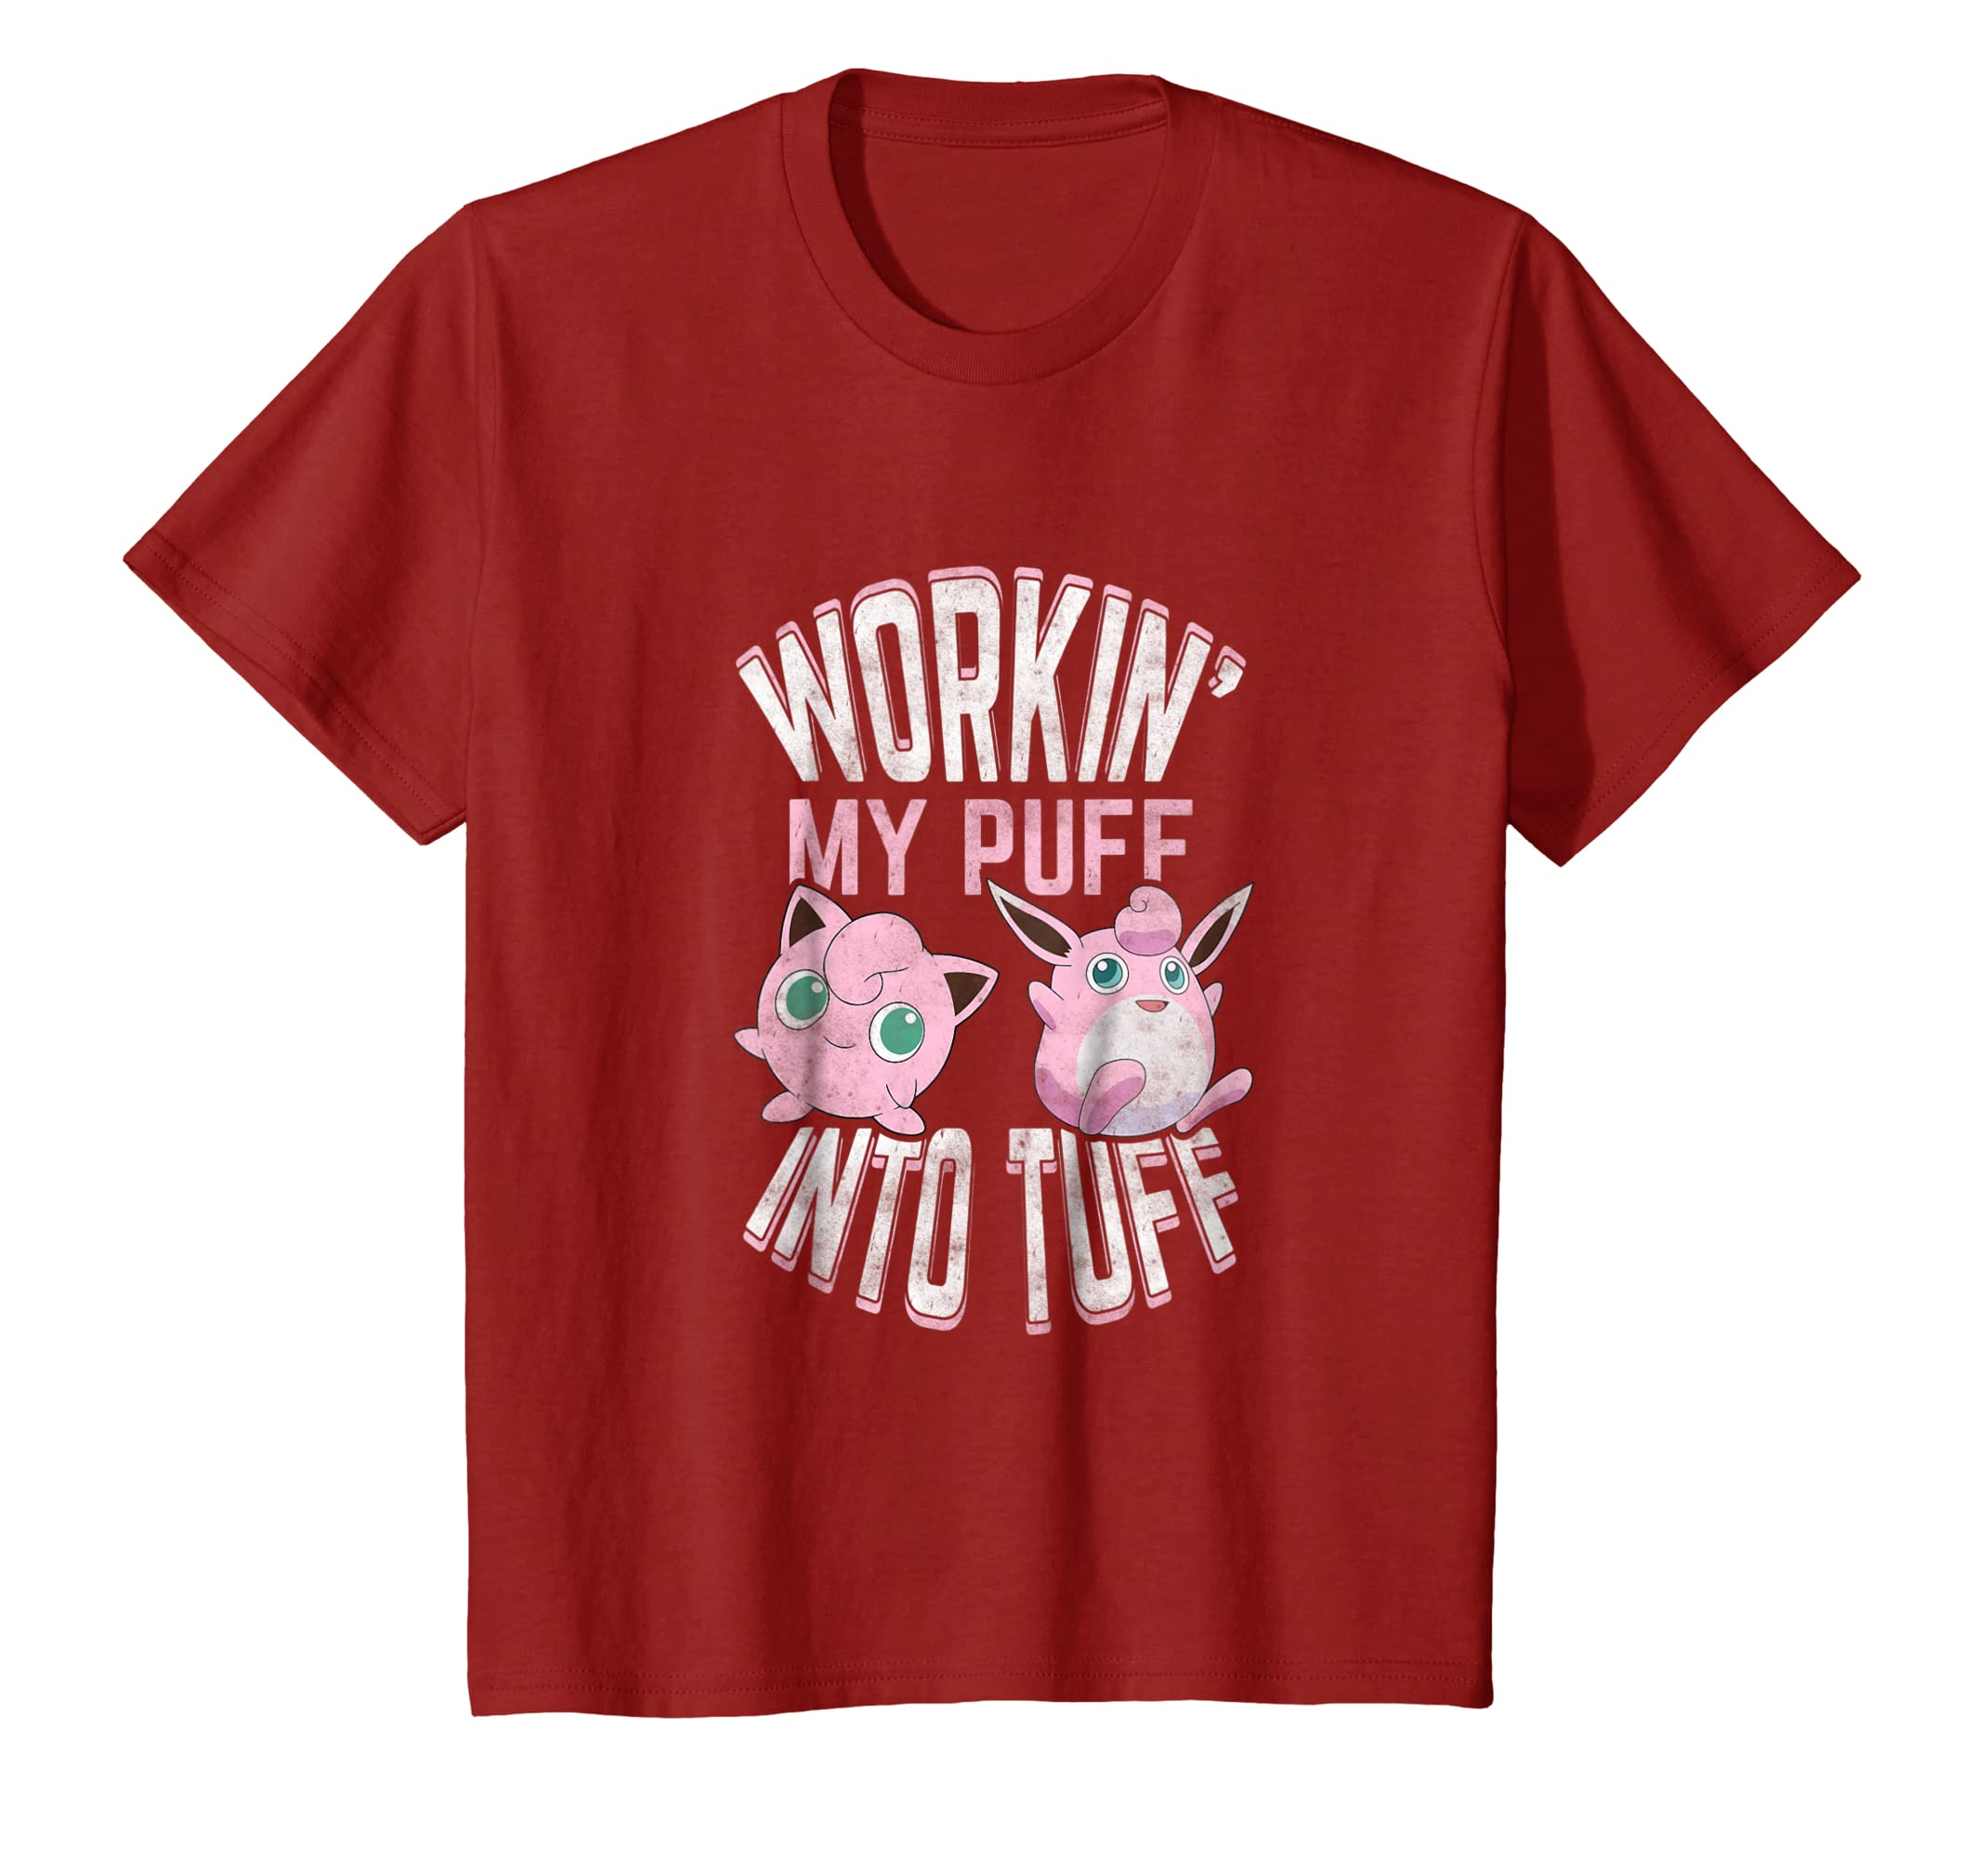 65f8a04c Amazon.com: Workin' My Puff into Tuff T shirt, Workout shirt: Clothing